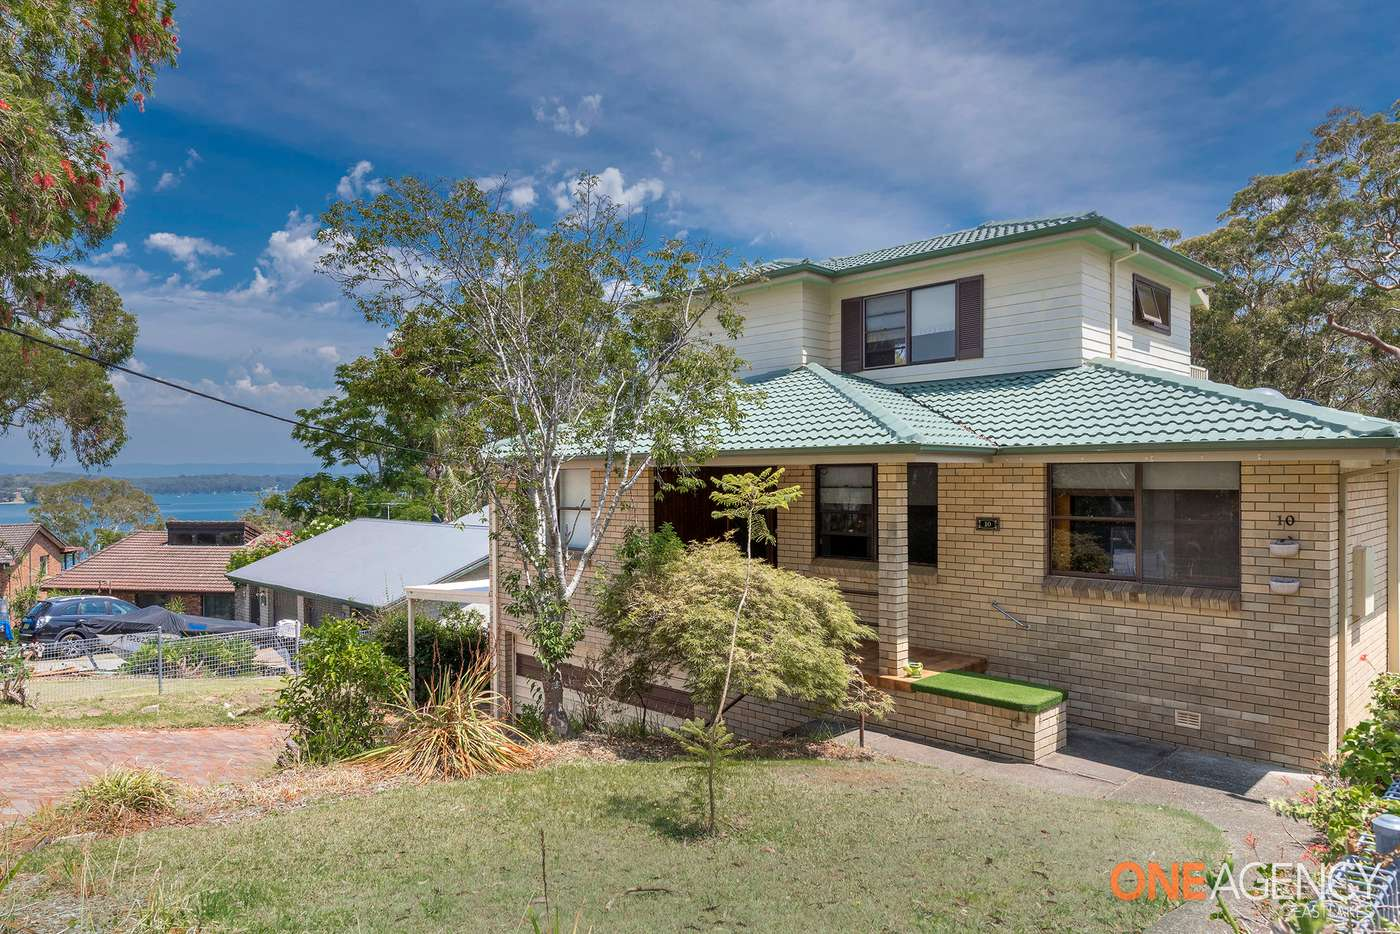 Main view of Homely house listing, 10 Omaru Close, Nords Wharf NSW 2281